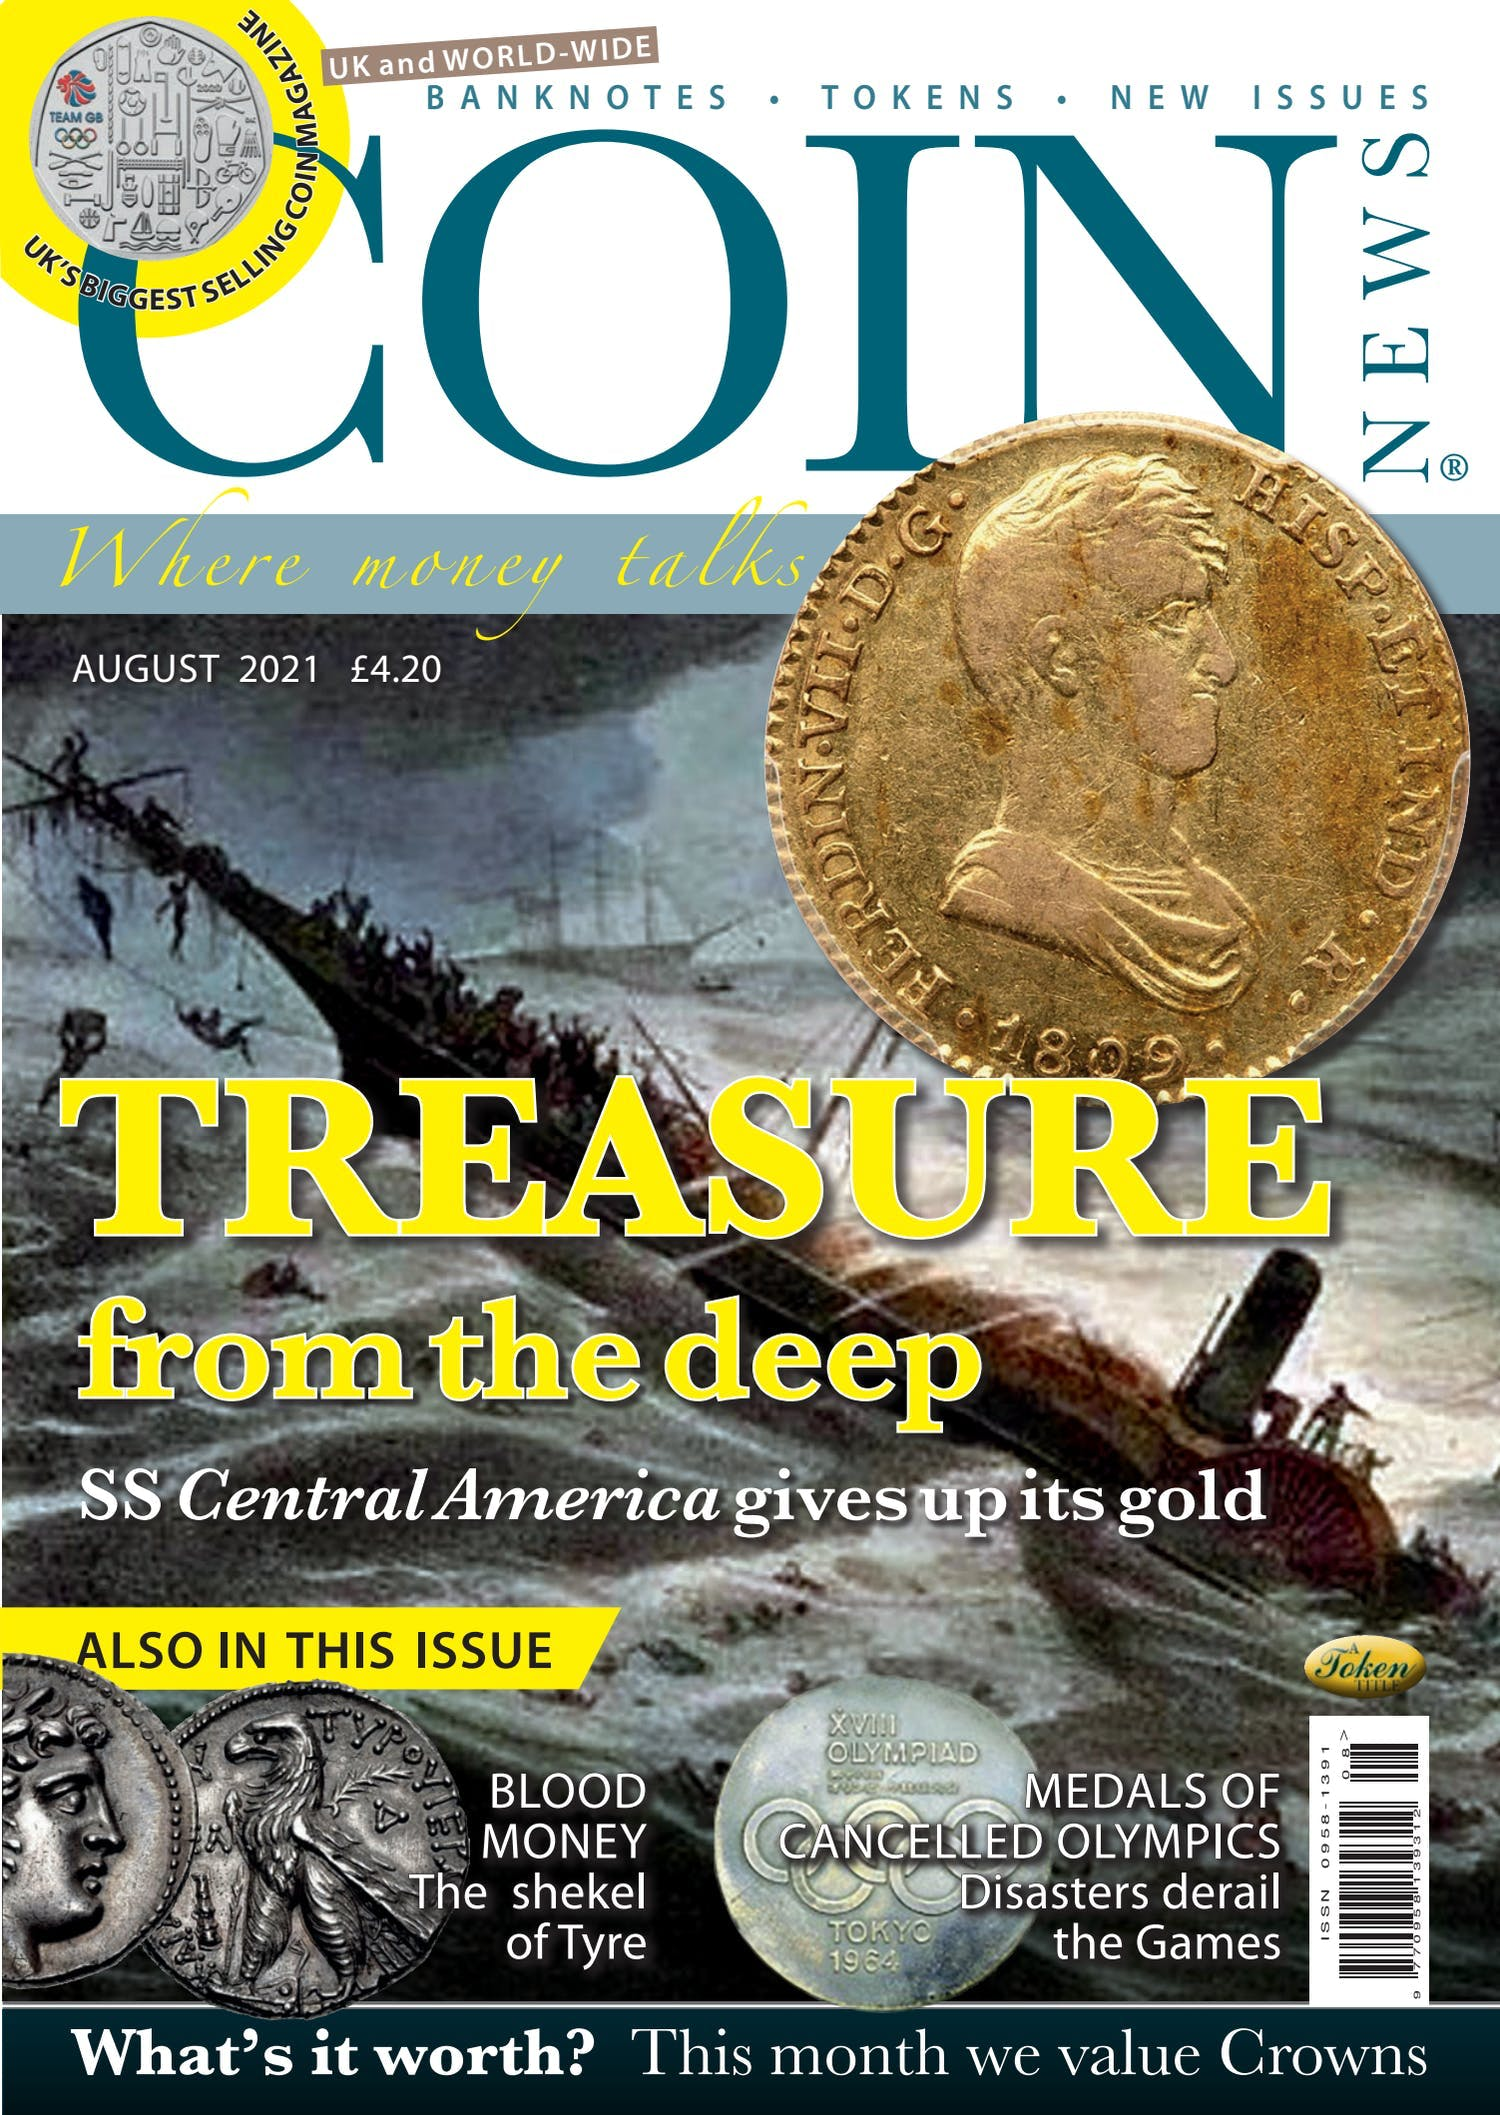 The front cover of Coin News, August 2021 - Volume 58, Number 8